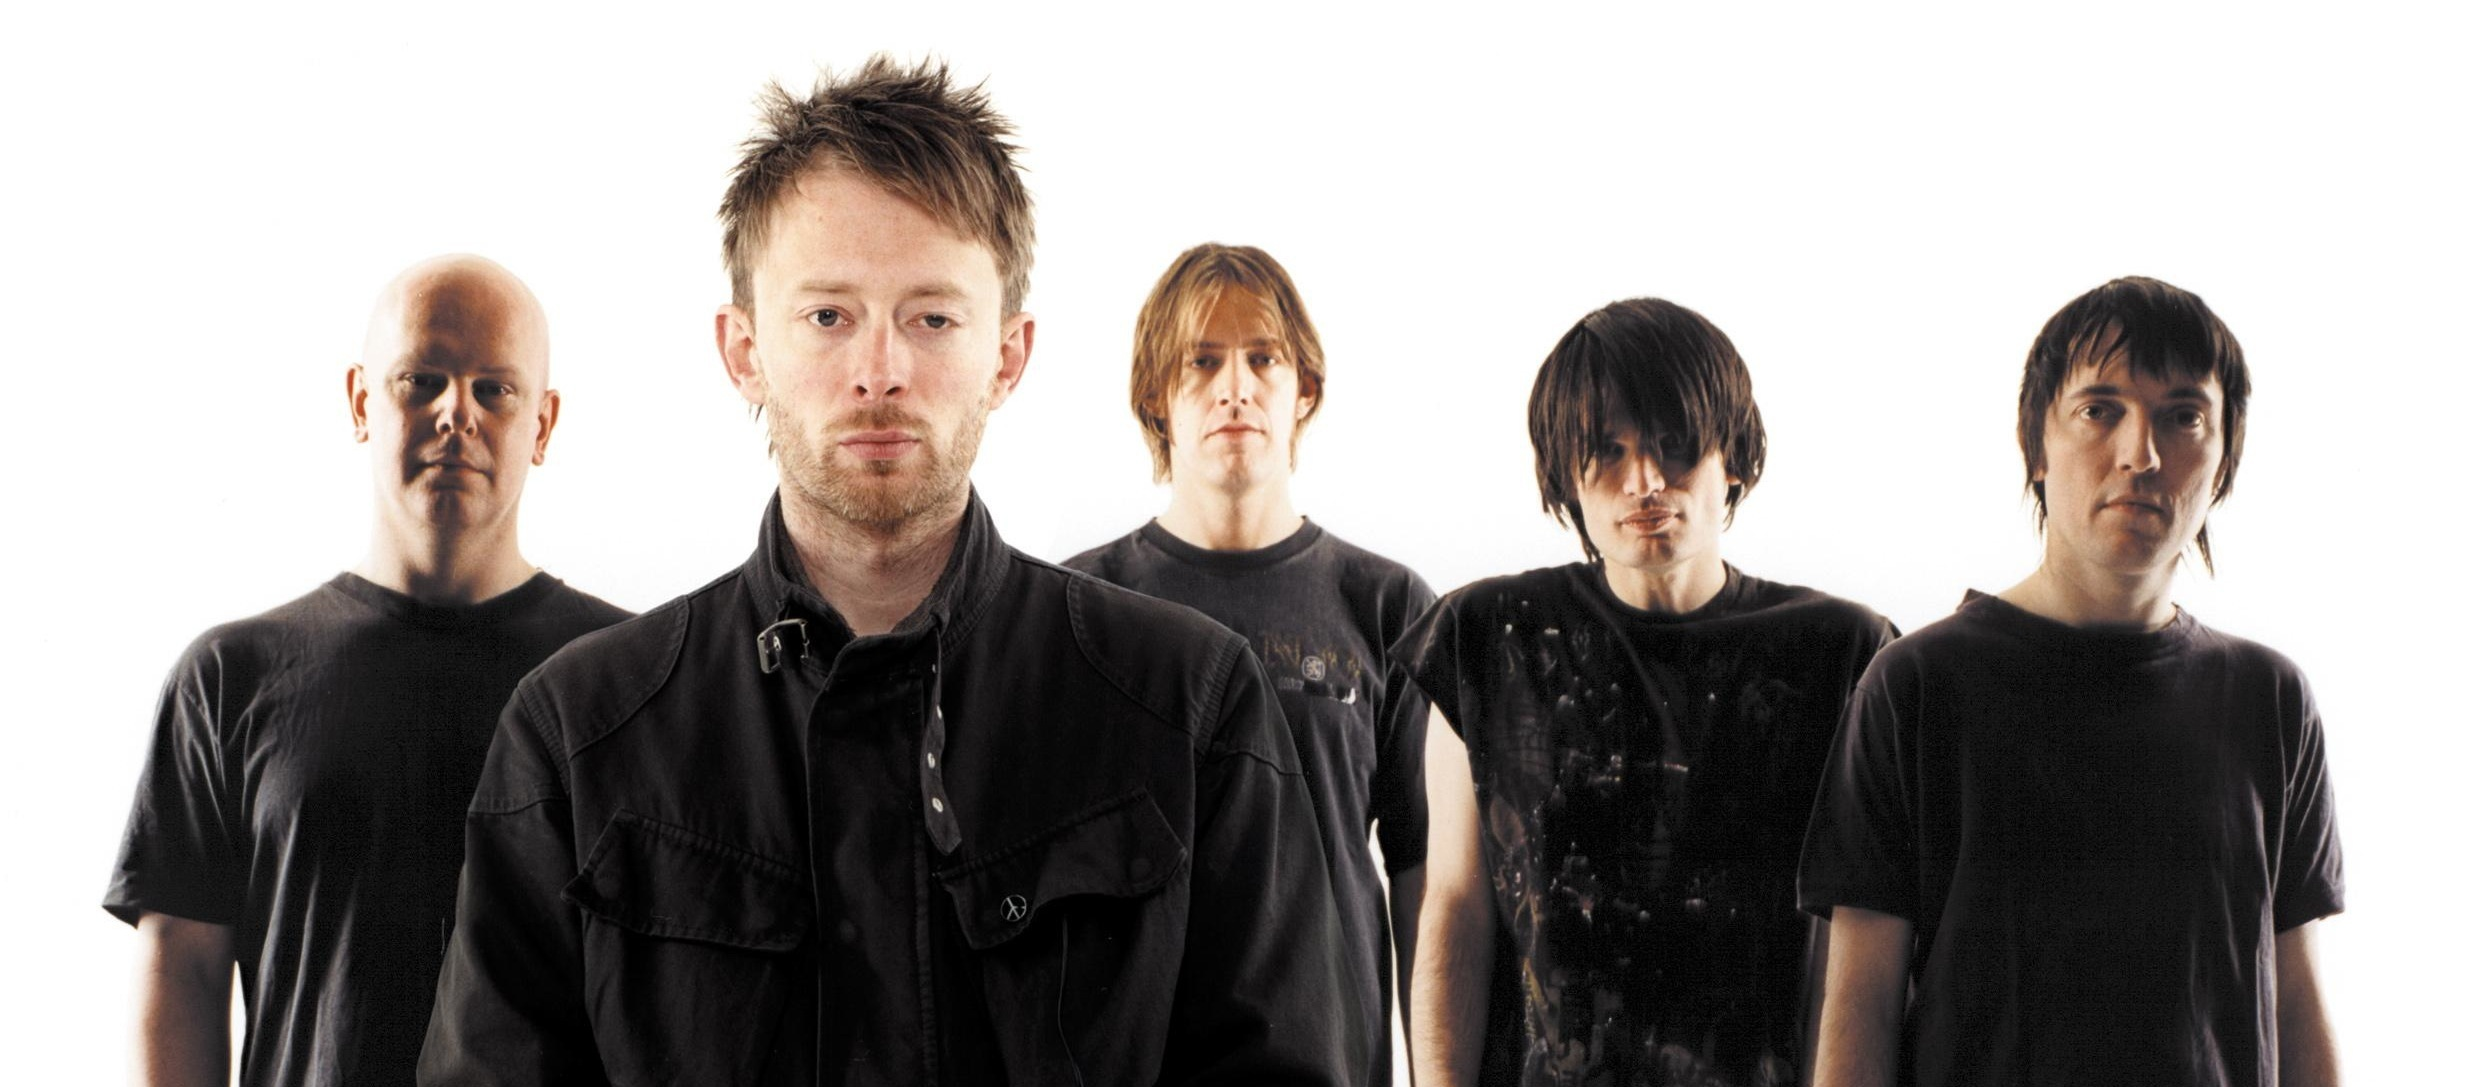 Radiohead band members: Phil Selway, Thom Yorke, Ed O'Brien, Jonny Greenwood, and Colin Greenwood,